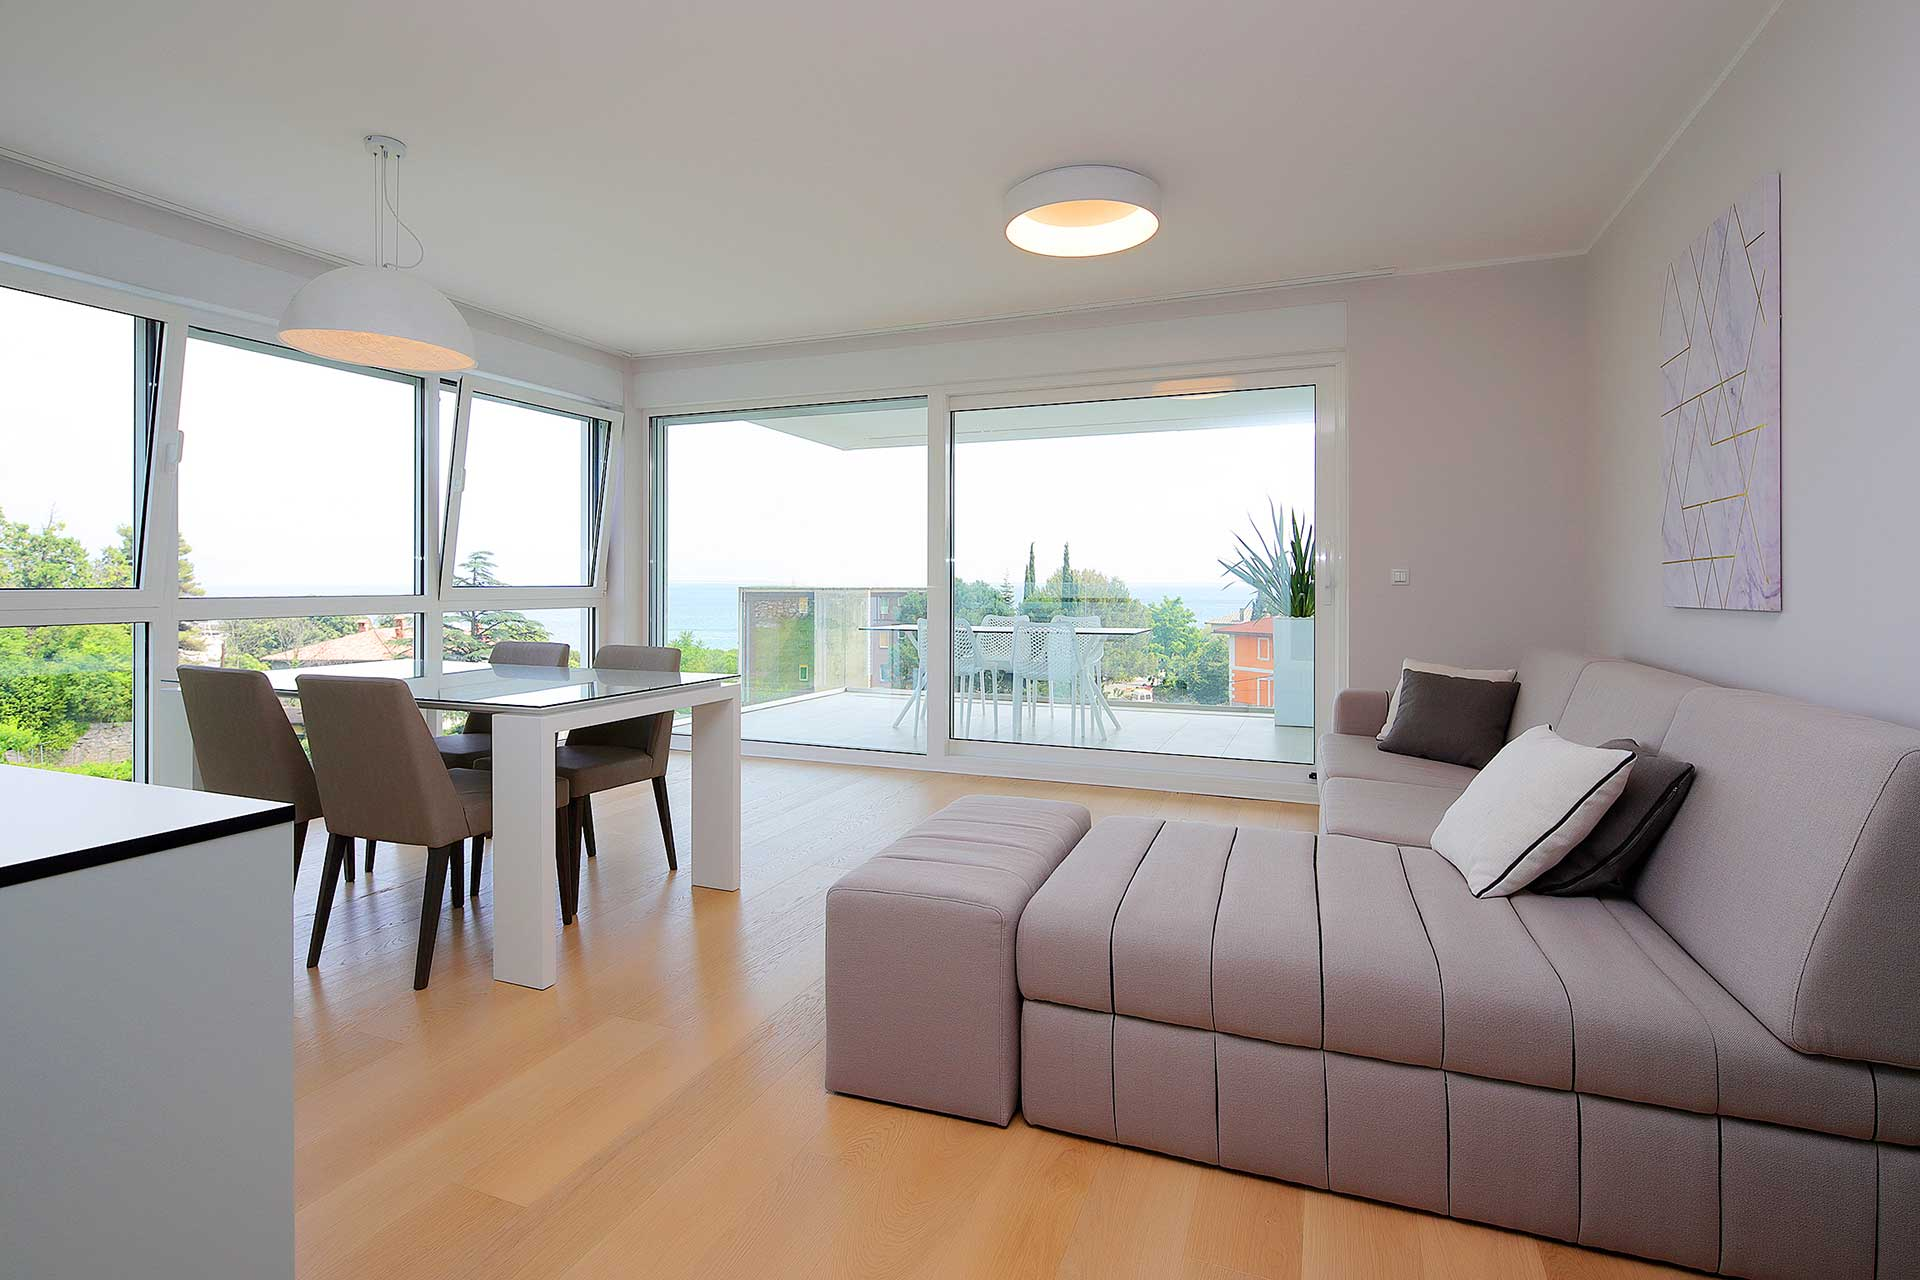 s3-stylish-apartment-100m-from-the-beach-living-room